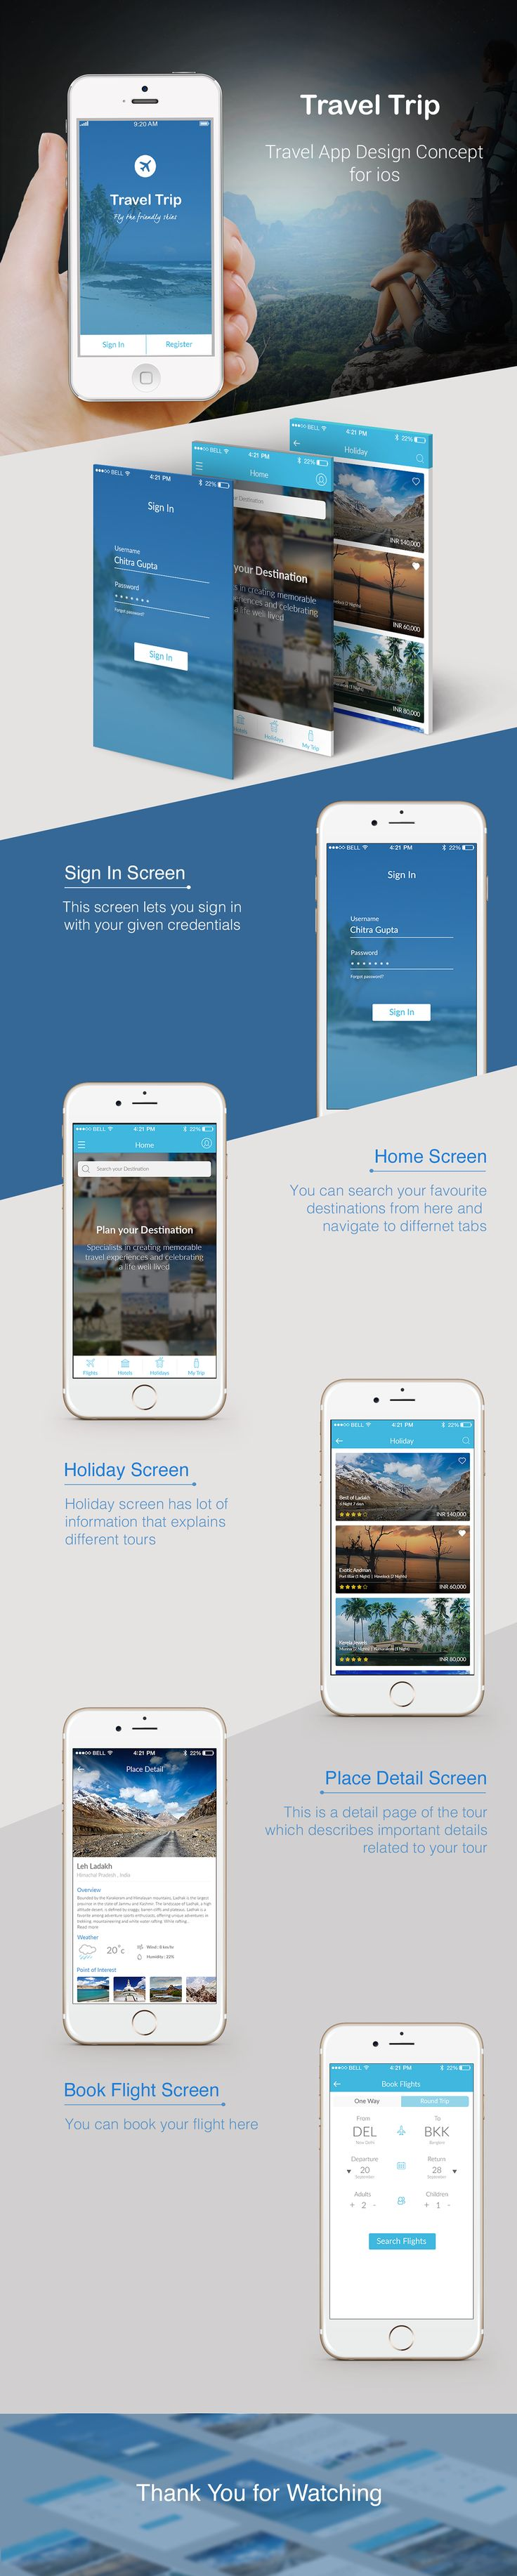 Extremely Helpful Apps You Should Have When Travelling Travel App Design on Behance